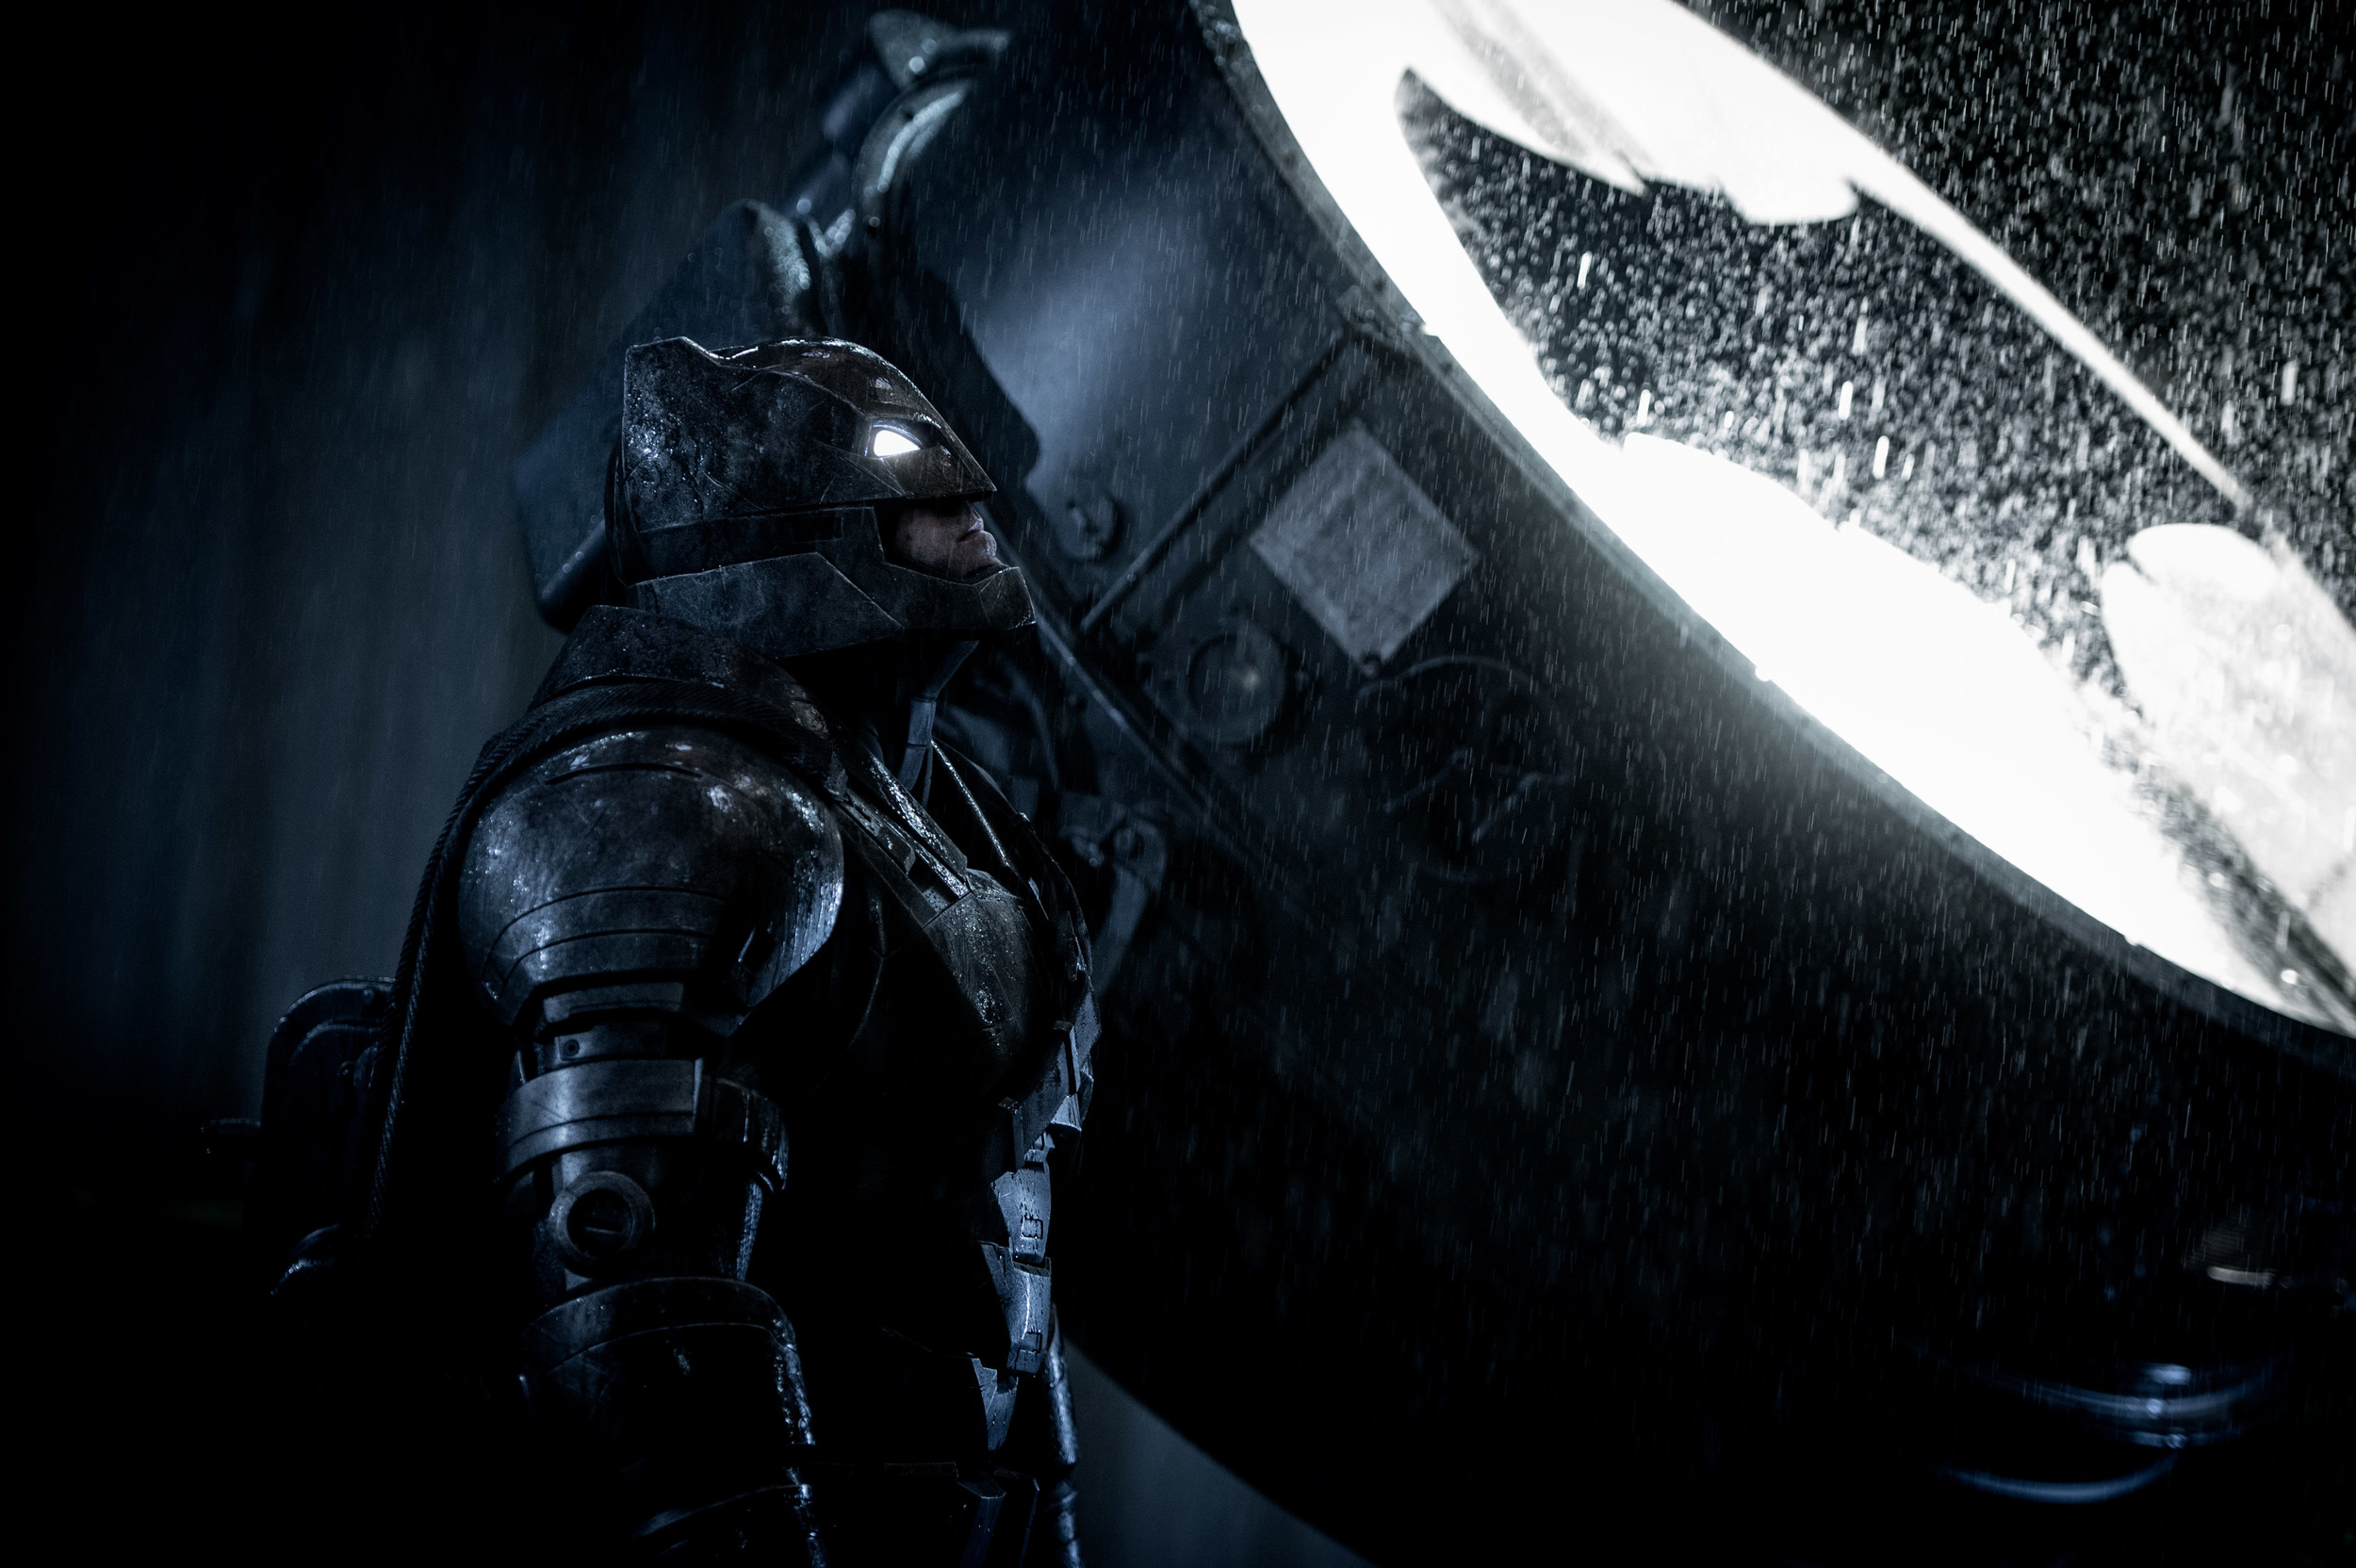 ben-affleck-batman-v-superman-dawn-of-justice-image.jpg